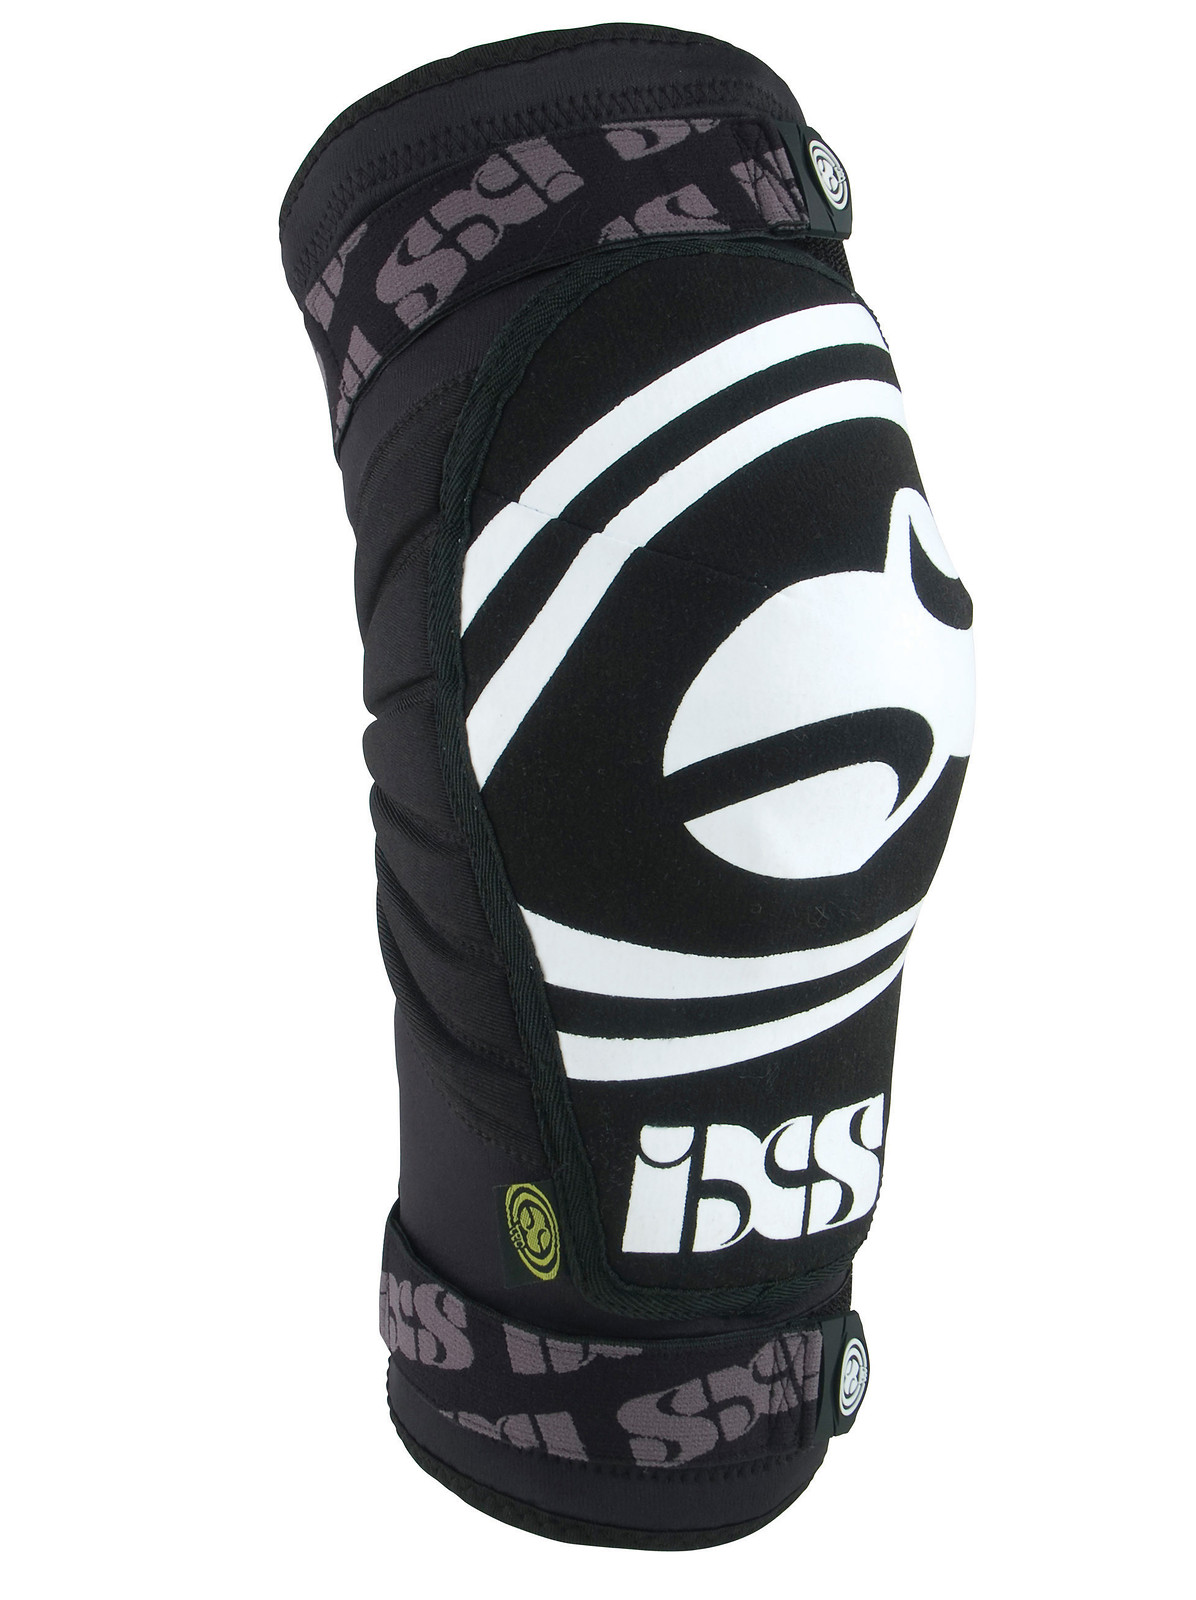 iXS Slope-SeriesEVO Knee Pad SLOPE-Knee_black_front